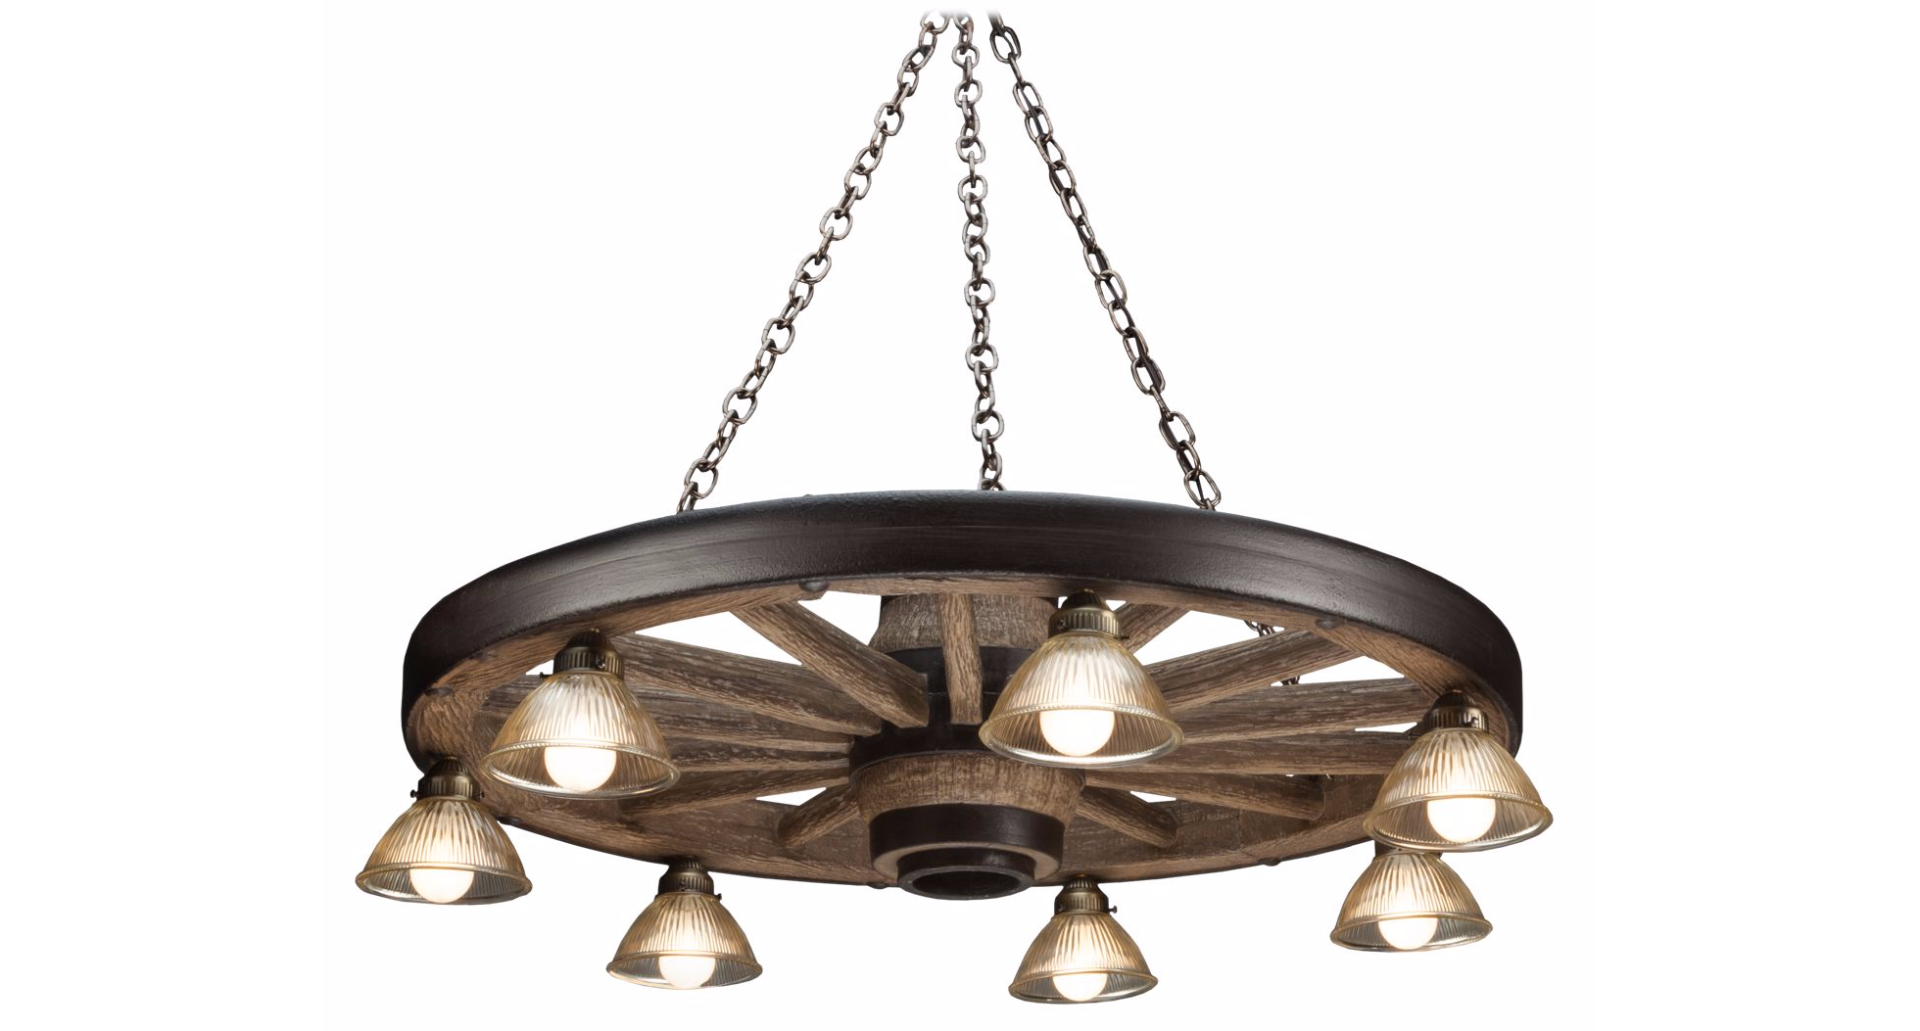 large wagon wheel chandelier with downlights* - cast horn designs